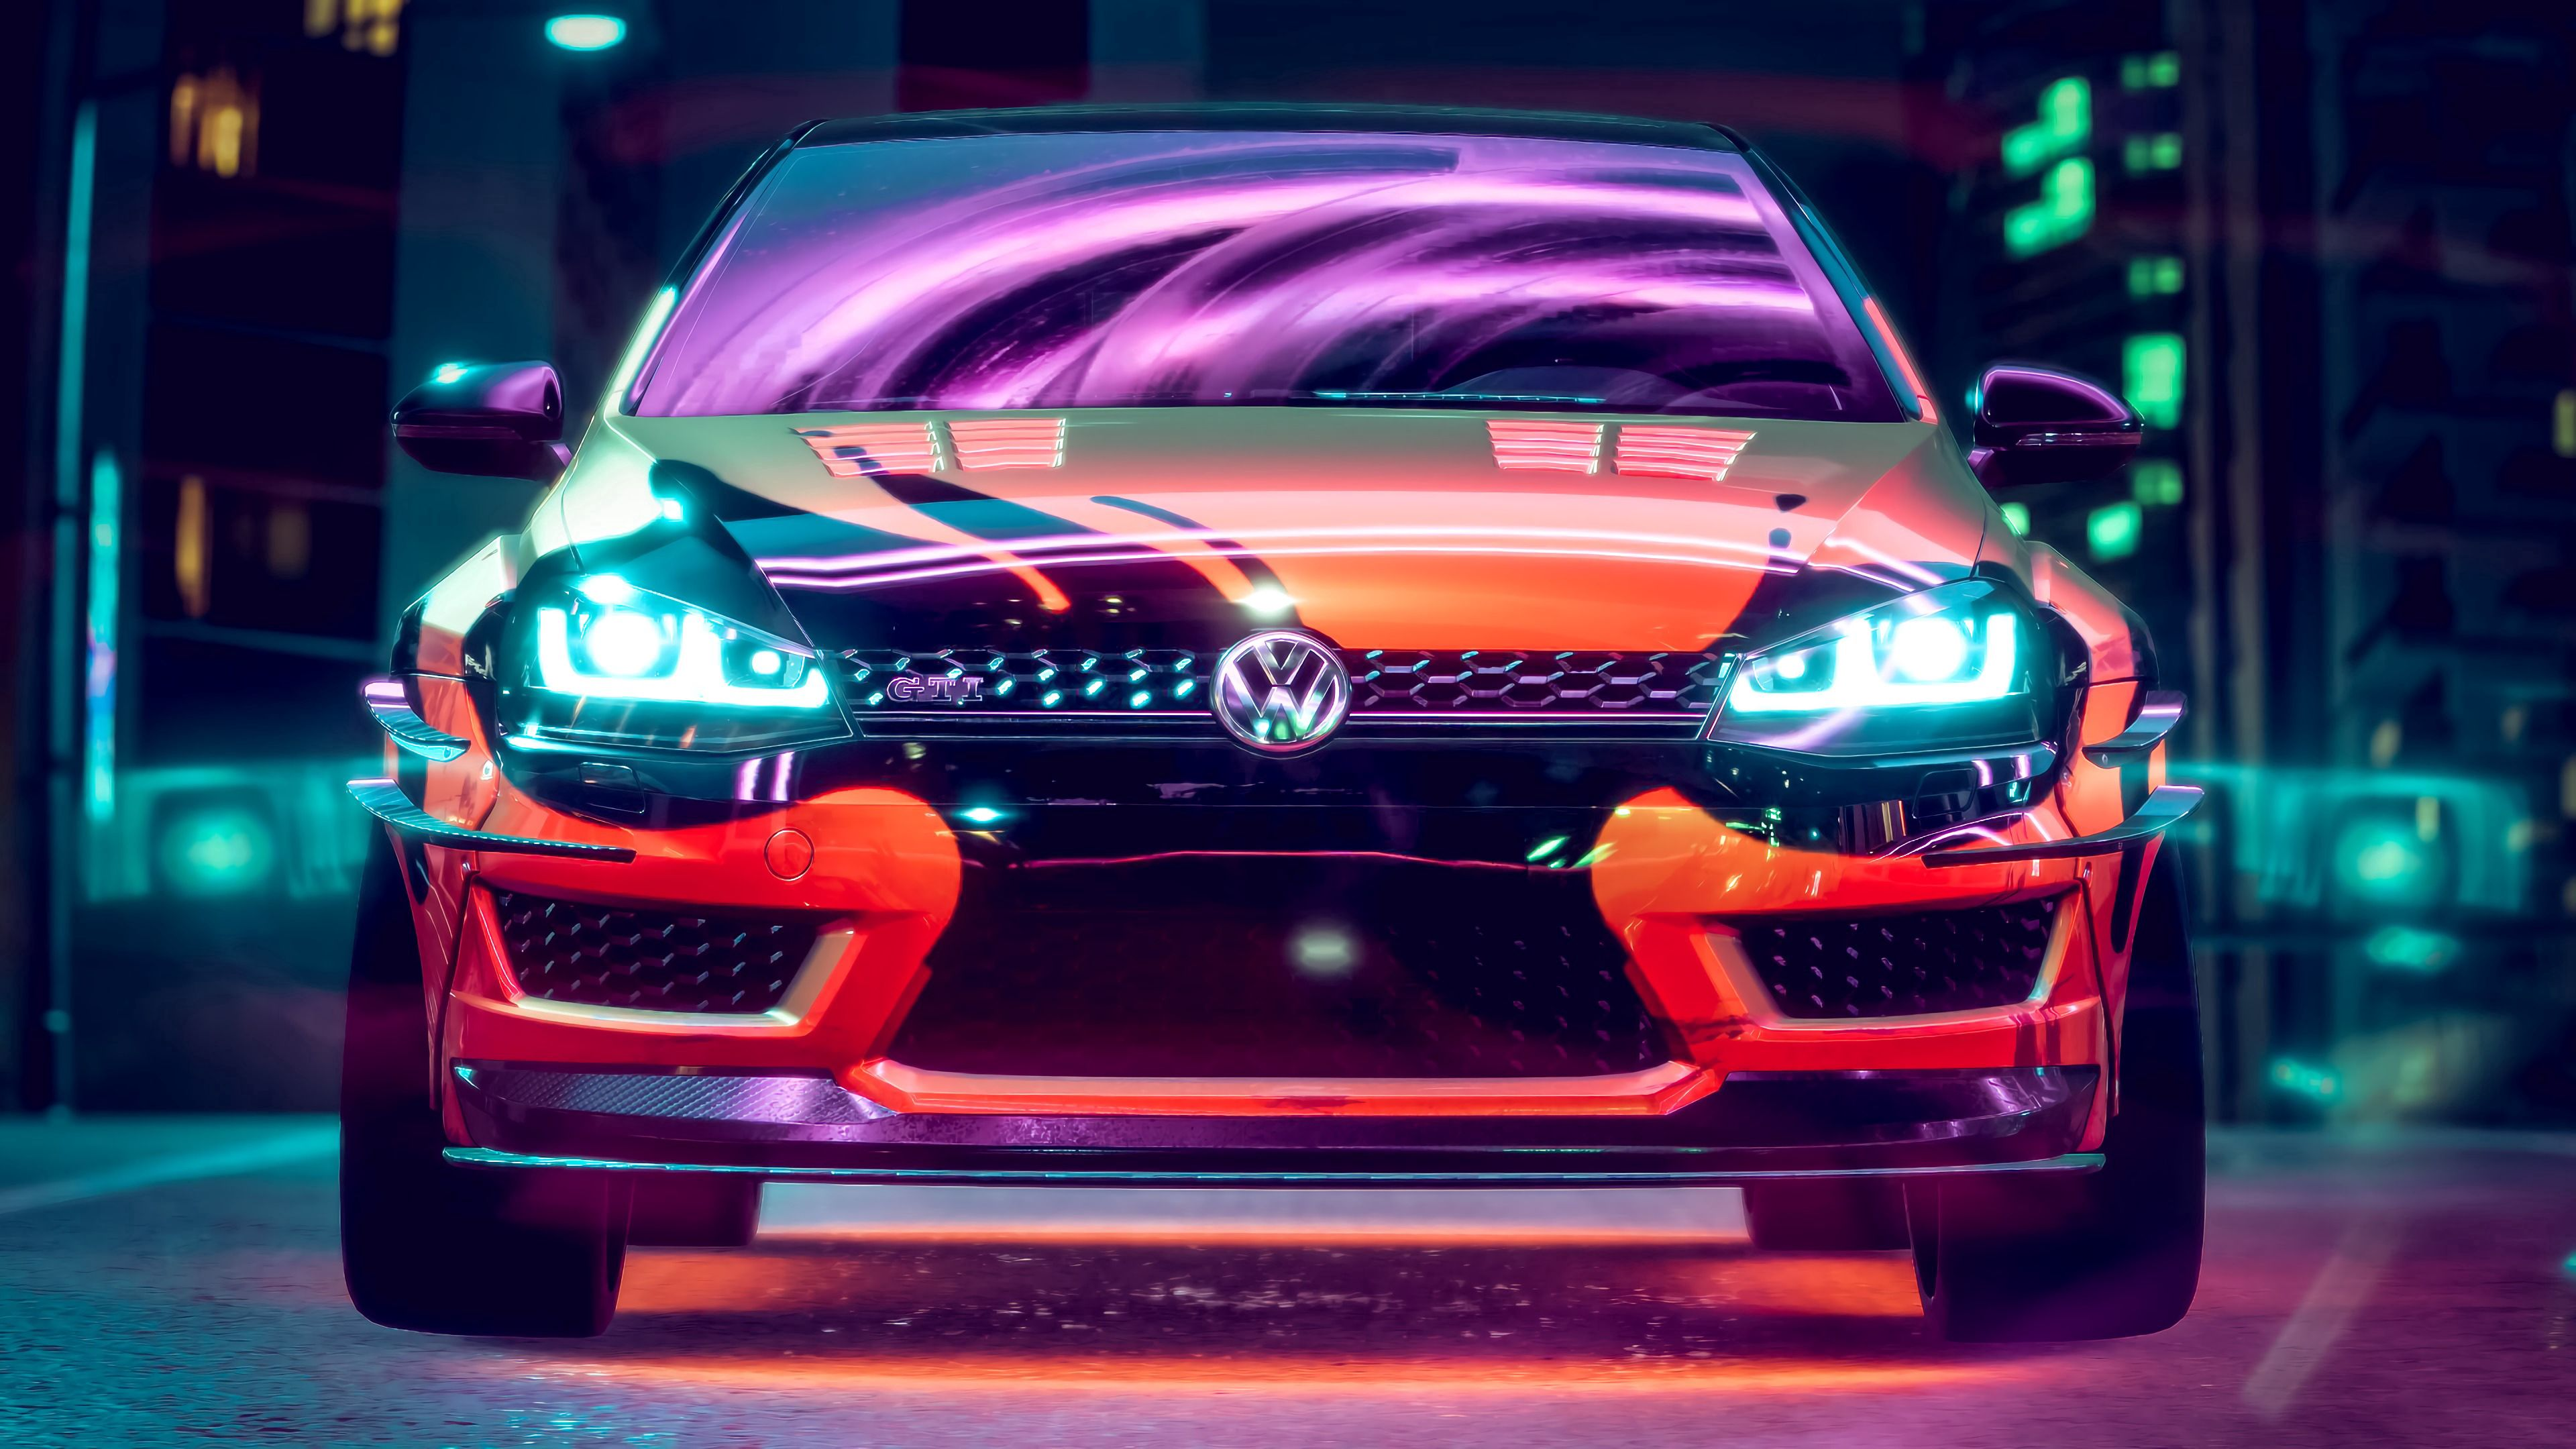 70479 download wallpaper Volkswagen, Tuning, Cars, Car, Machine, Neon, Backlight, Illumination, Volkswagen Golf Gti screensavers and pictures for free